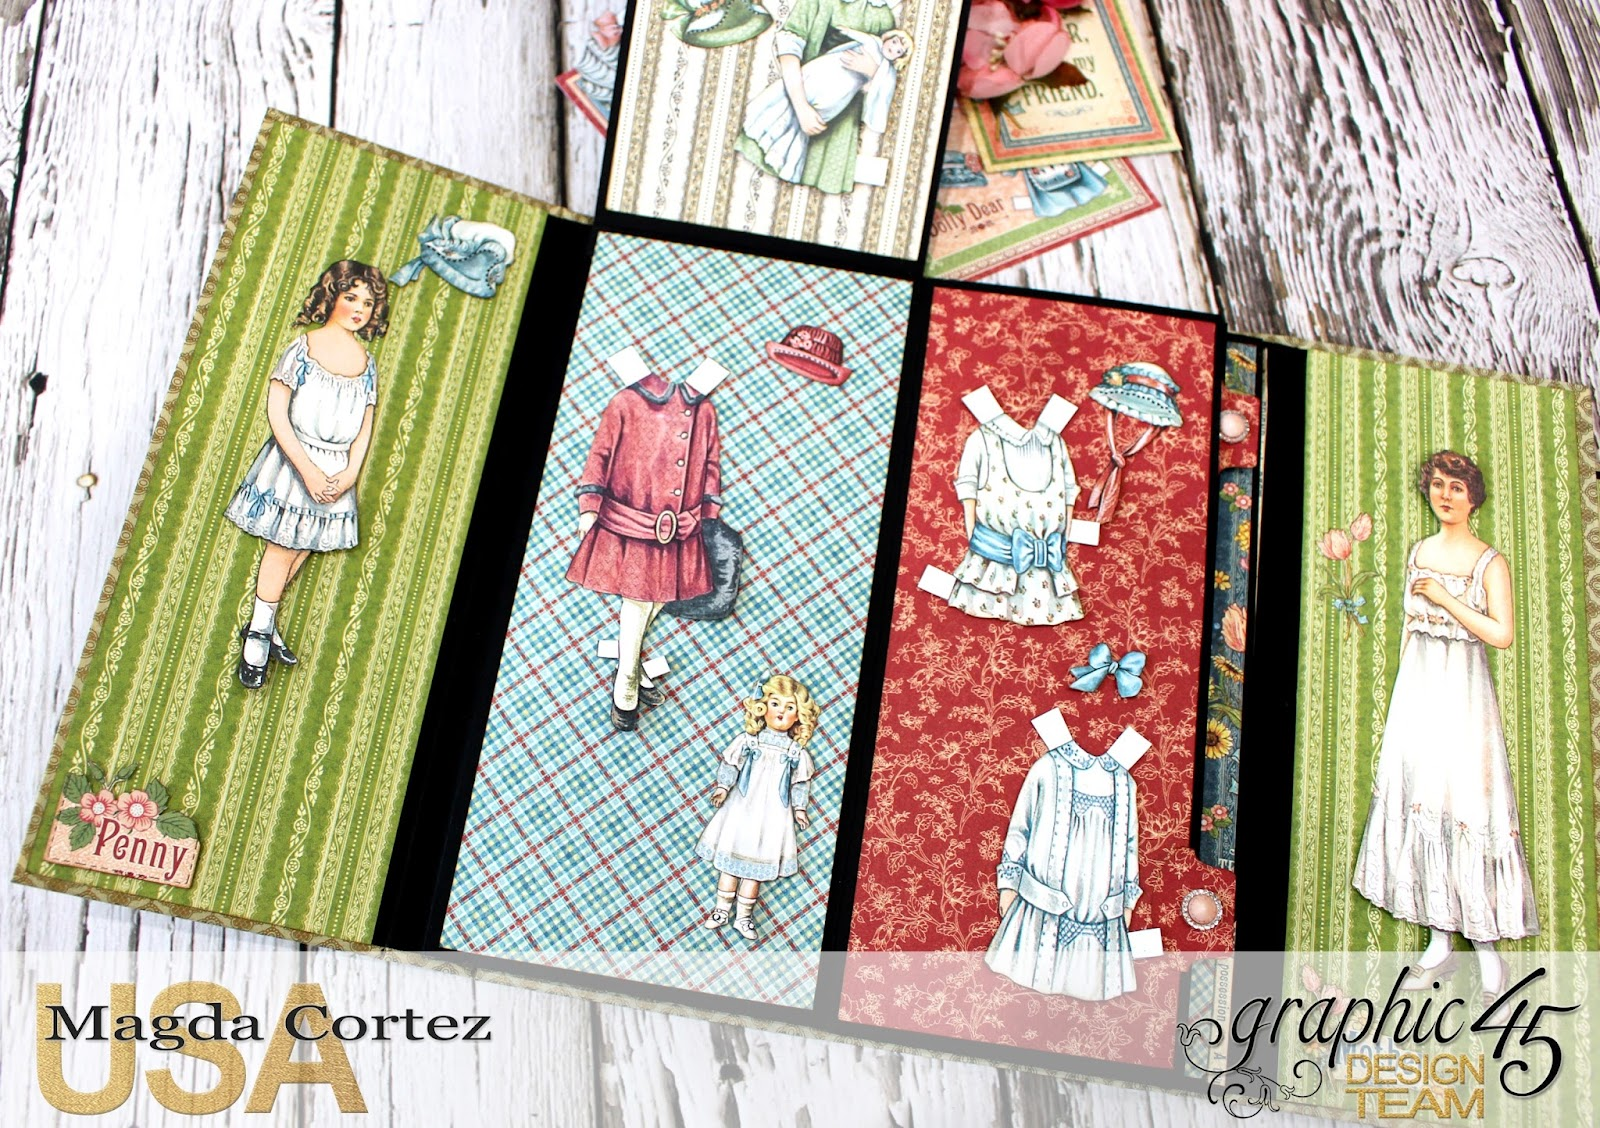 Penny's Paper Doll Family Book, Penny's Paper Doll Family, By Magda Cortez, Product of Graphic45, Photo 07 of 12.jpg